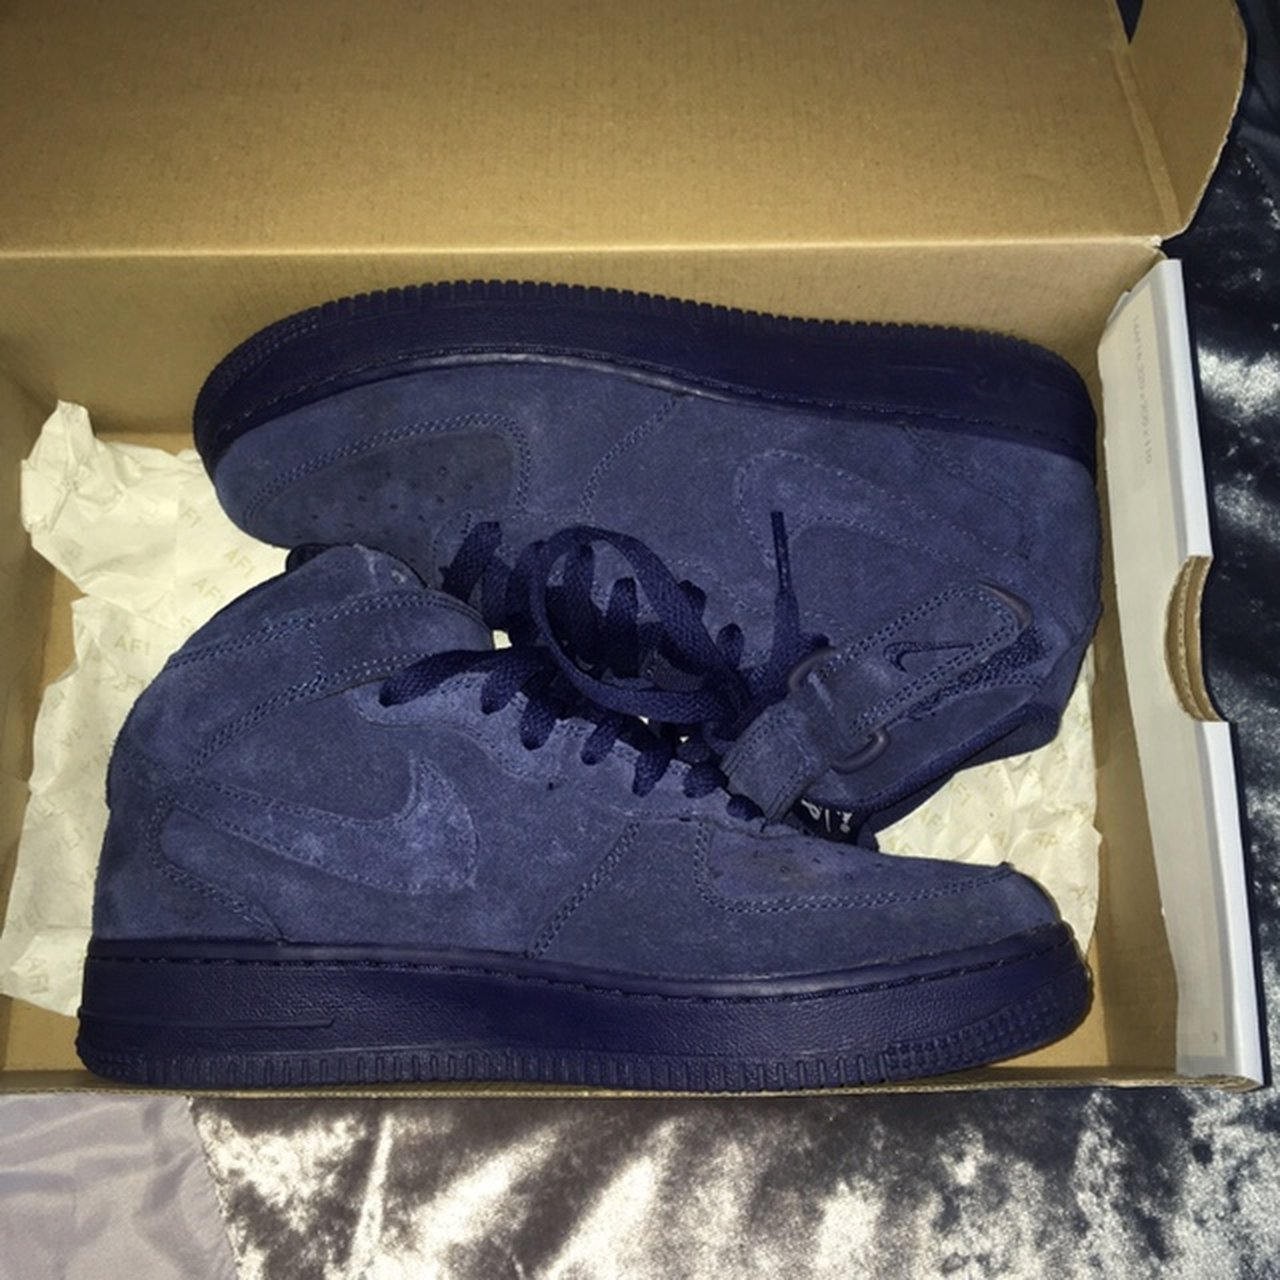 pretty nice 4aa10 471a4  vinaa. 9 months ago. Leeds, United Kingdom. Nike Air Force 1. Navy Blue,  Suede high tops